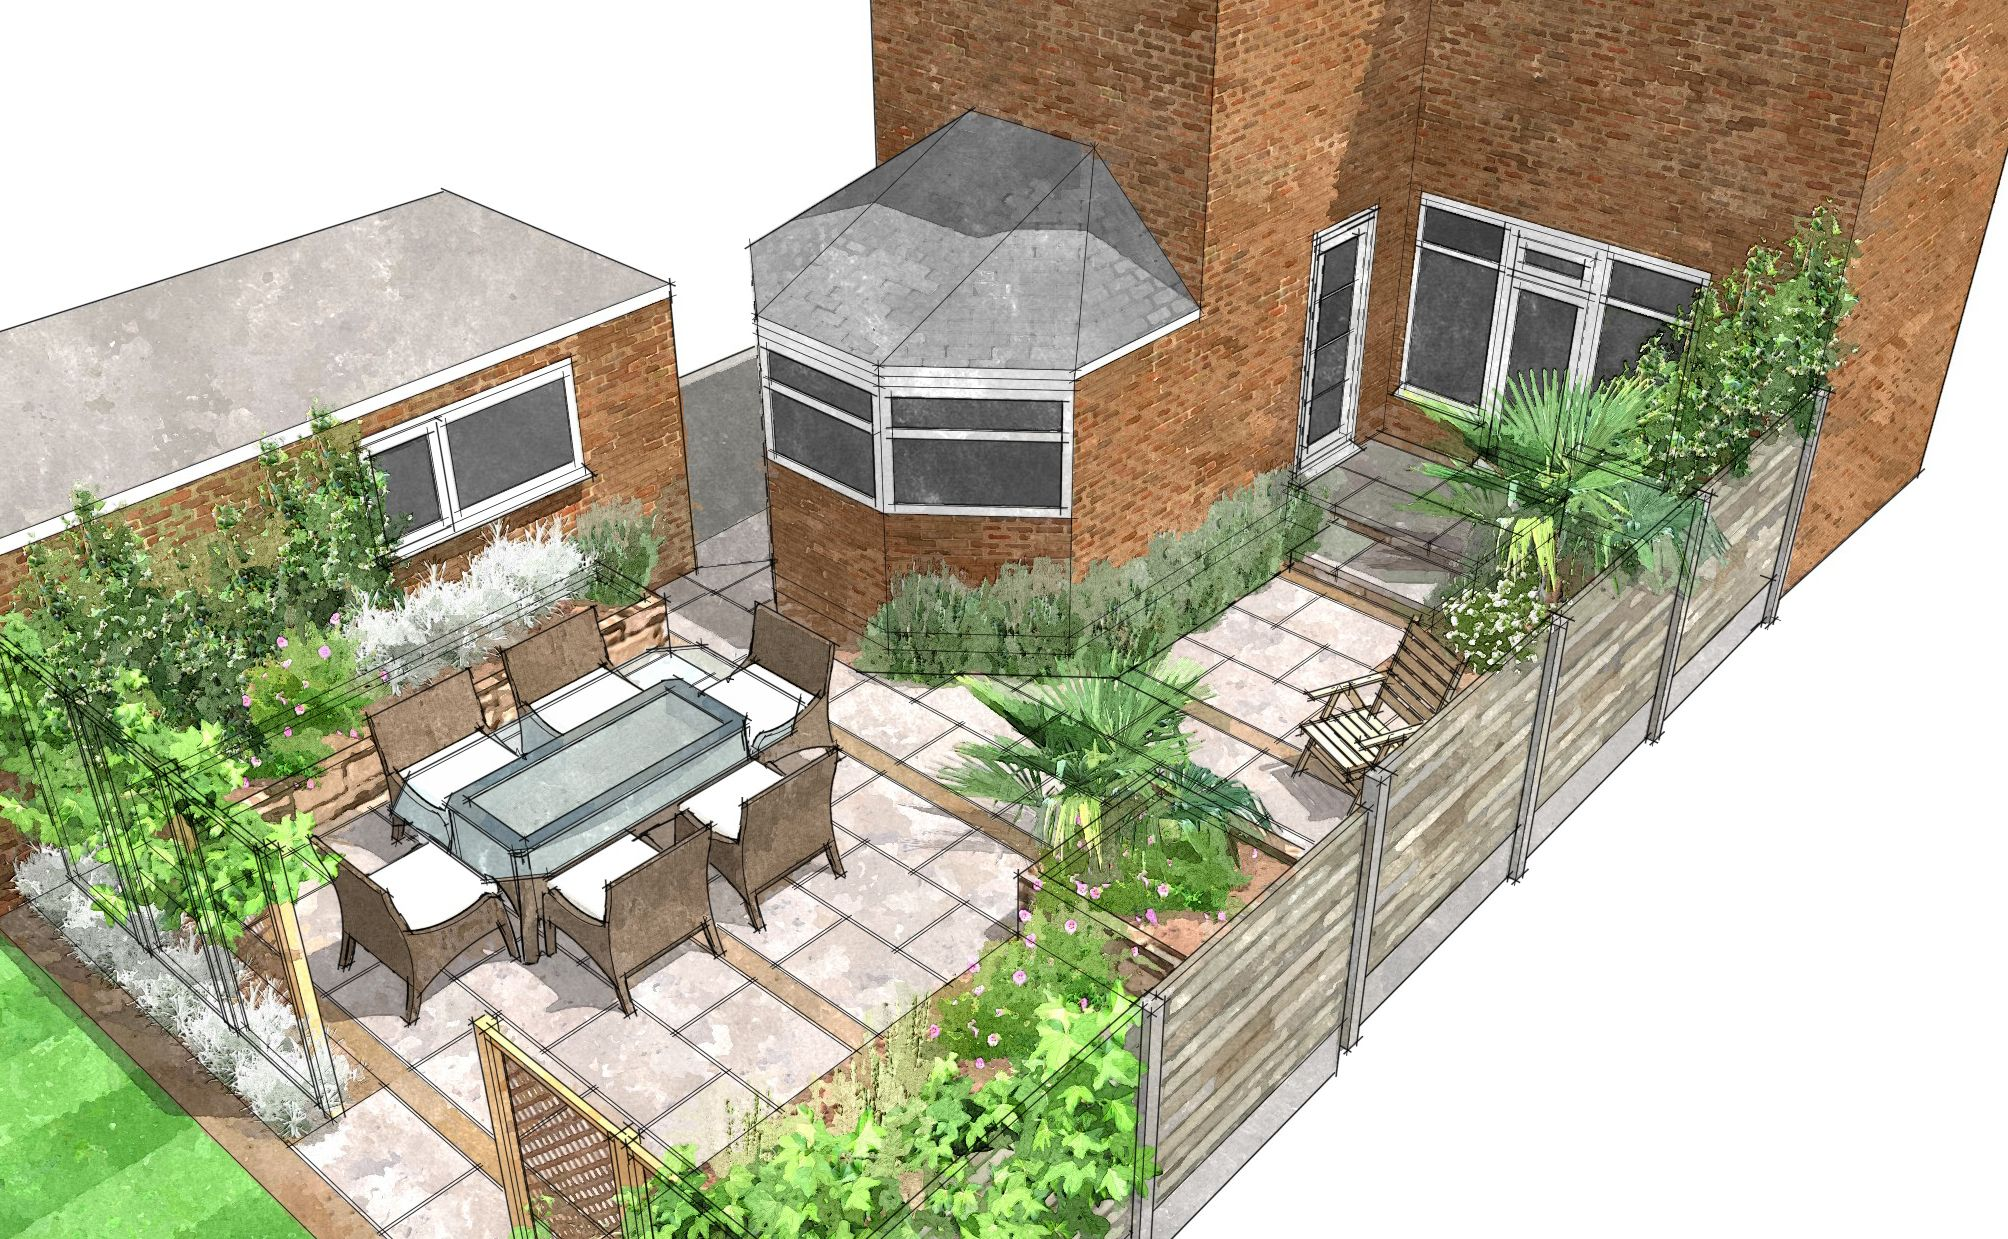 garden design plan by sally bishton sketchup by gaynor witchard - Garden Design Cad